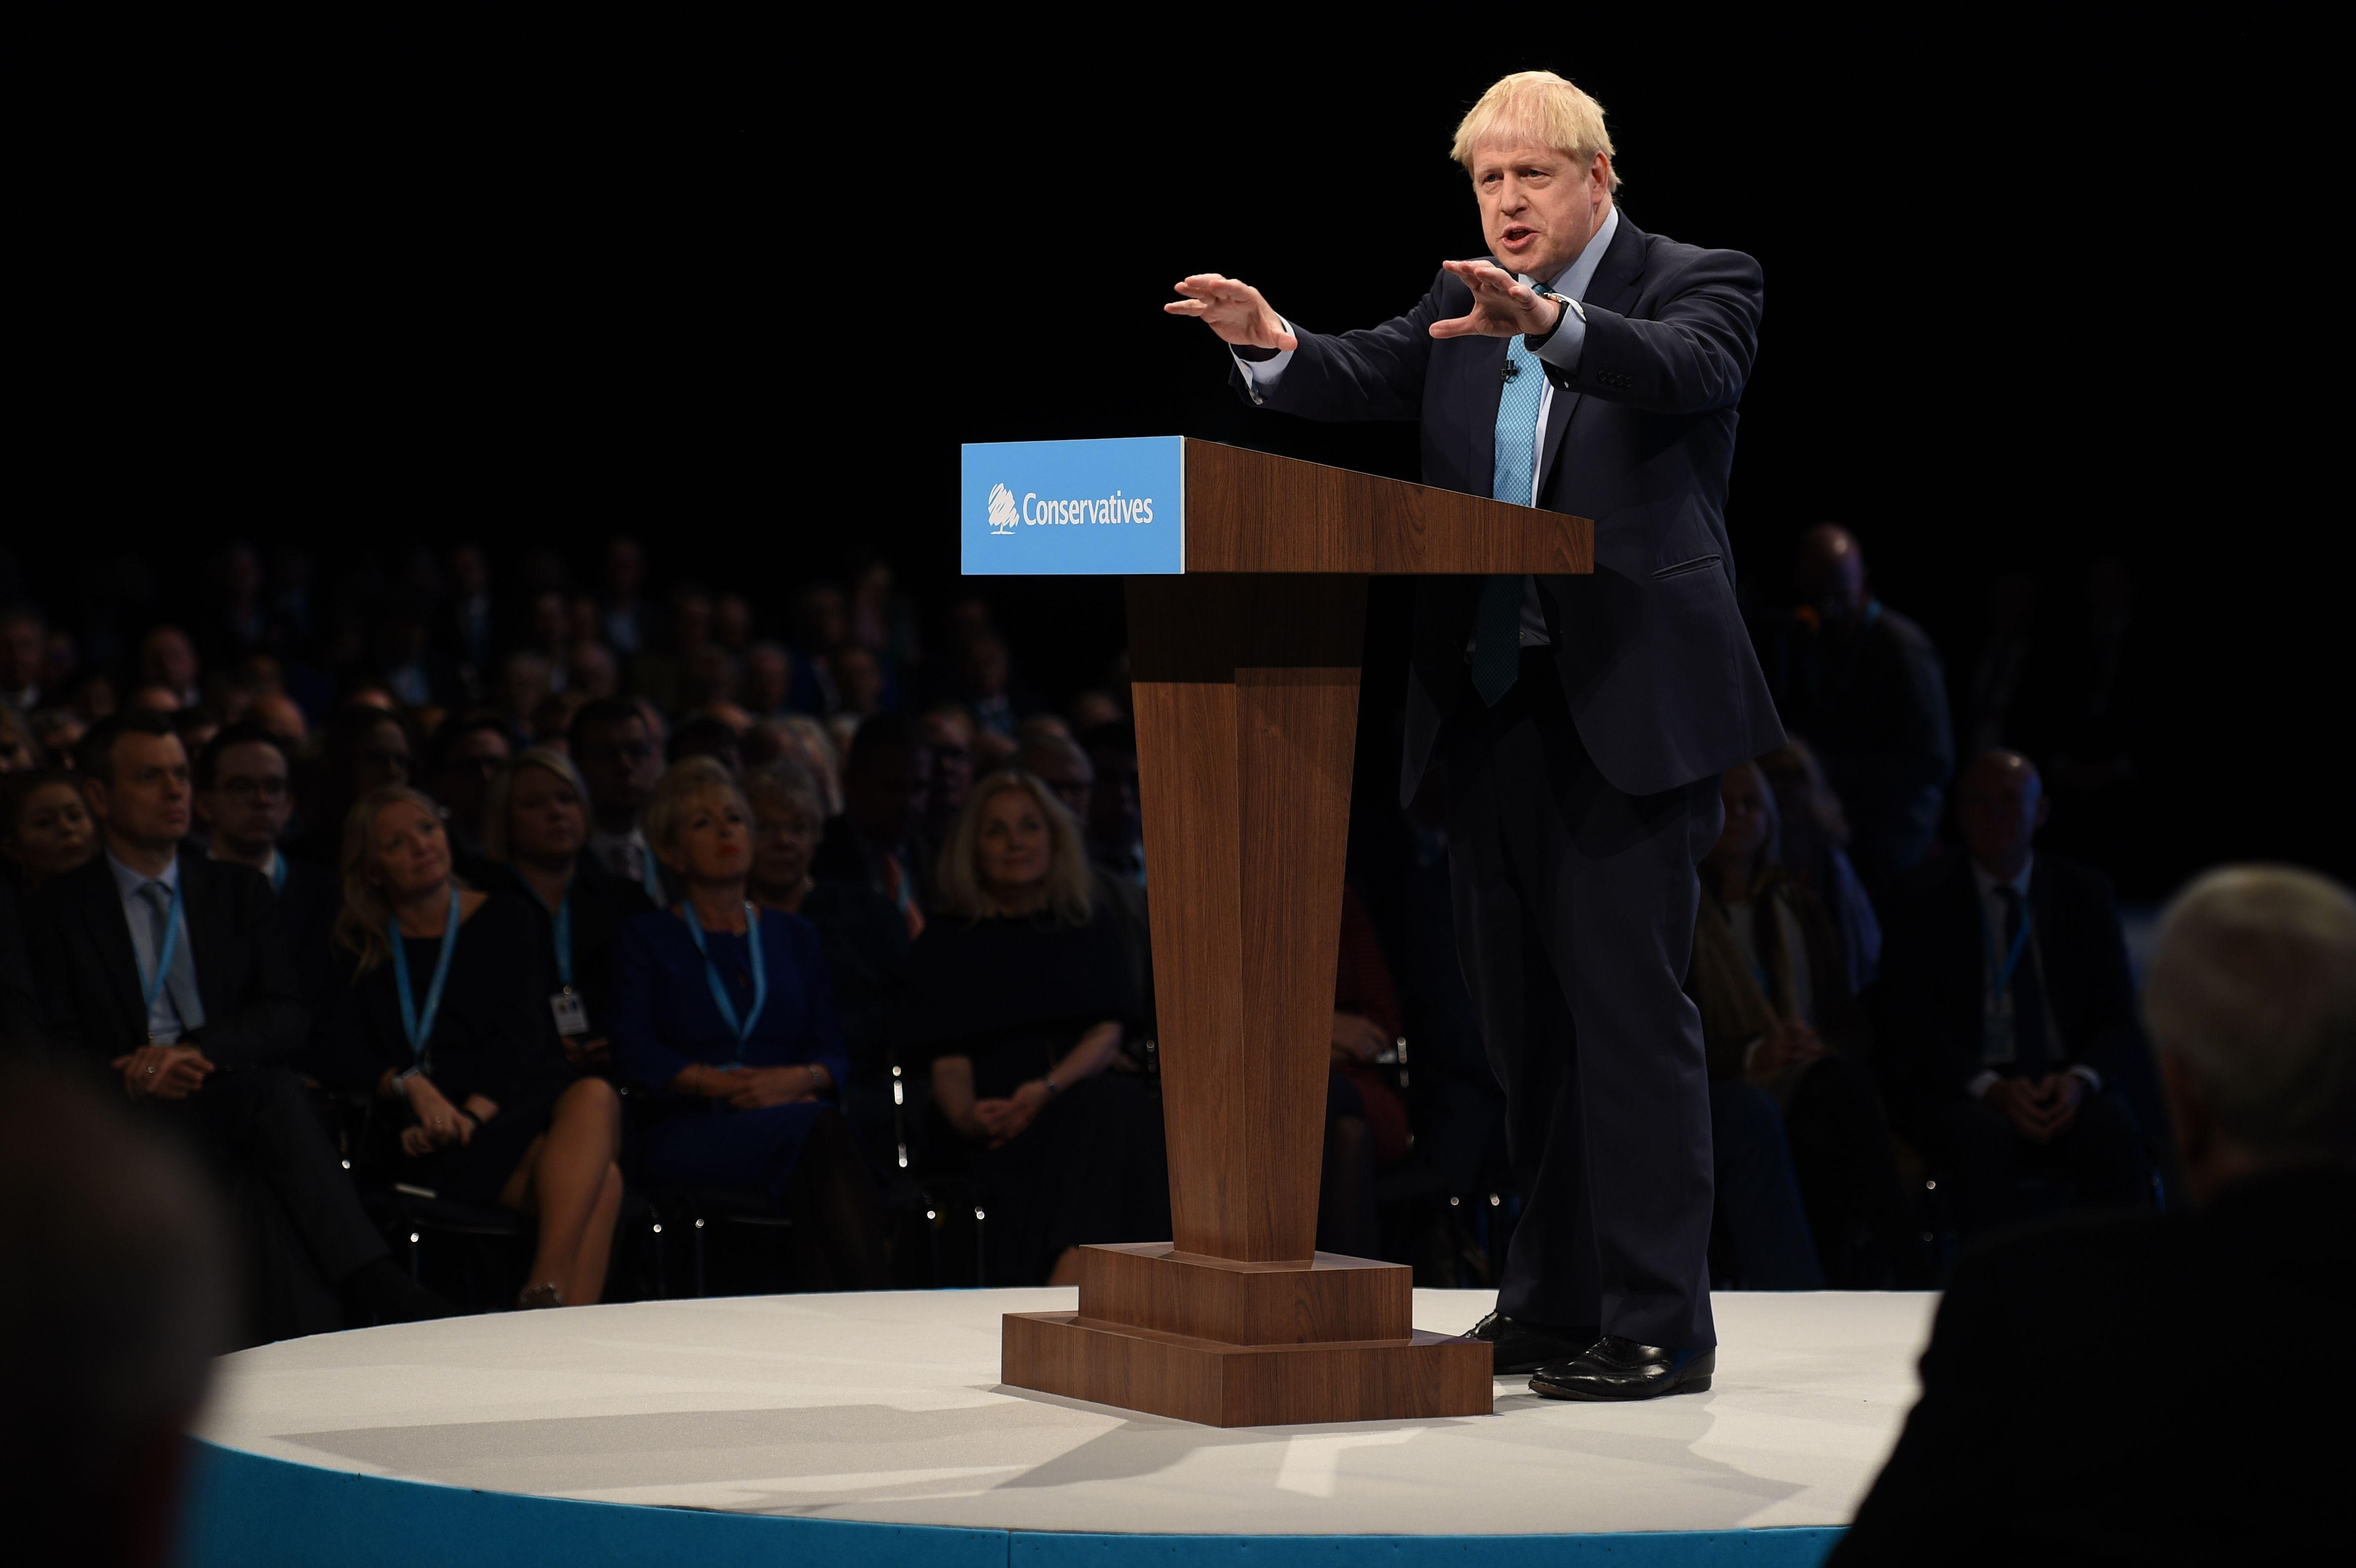 "Britain's Prime Minister Boris Johnson delivers his keynote speech to delegates on the final day of the annual Conservative Party conference at the Manchester Central convention complex, in Manchester, north-west England on October 2, 2019. - Prime Minister Boris Johnson was set to unveil his plan for a new Brexit deal at his Conservative party conference Wednesday, warning the EU it is that or Britain leaves with no agreement this month. Downing Street said Johnson would give details of a ""fair and reasonable compromise"" in his closing address to the gathering in Manchester, and would table the plans in Brussels the same day. (Photo by Oli SCARFF / AFP) (Photo by OLI SCARFF/AFP via Getty Images)"